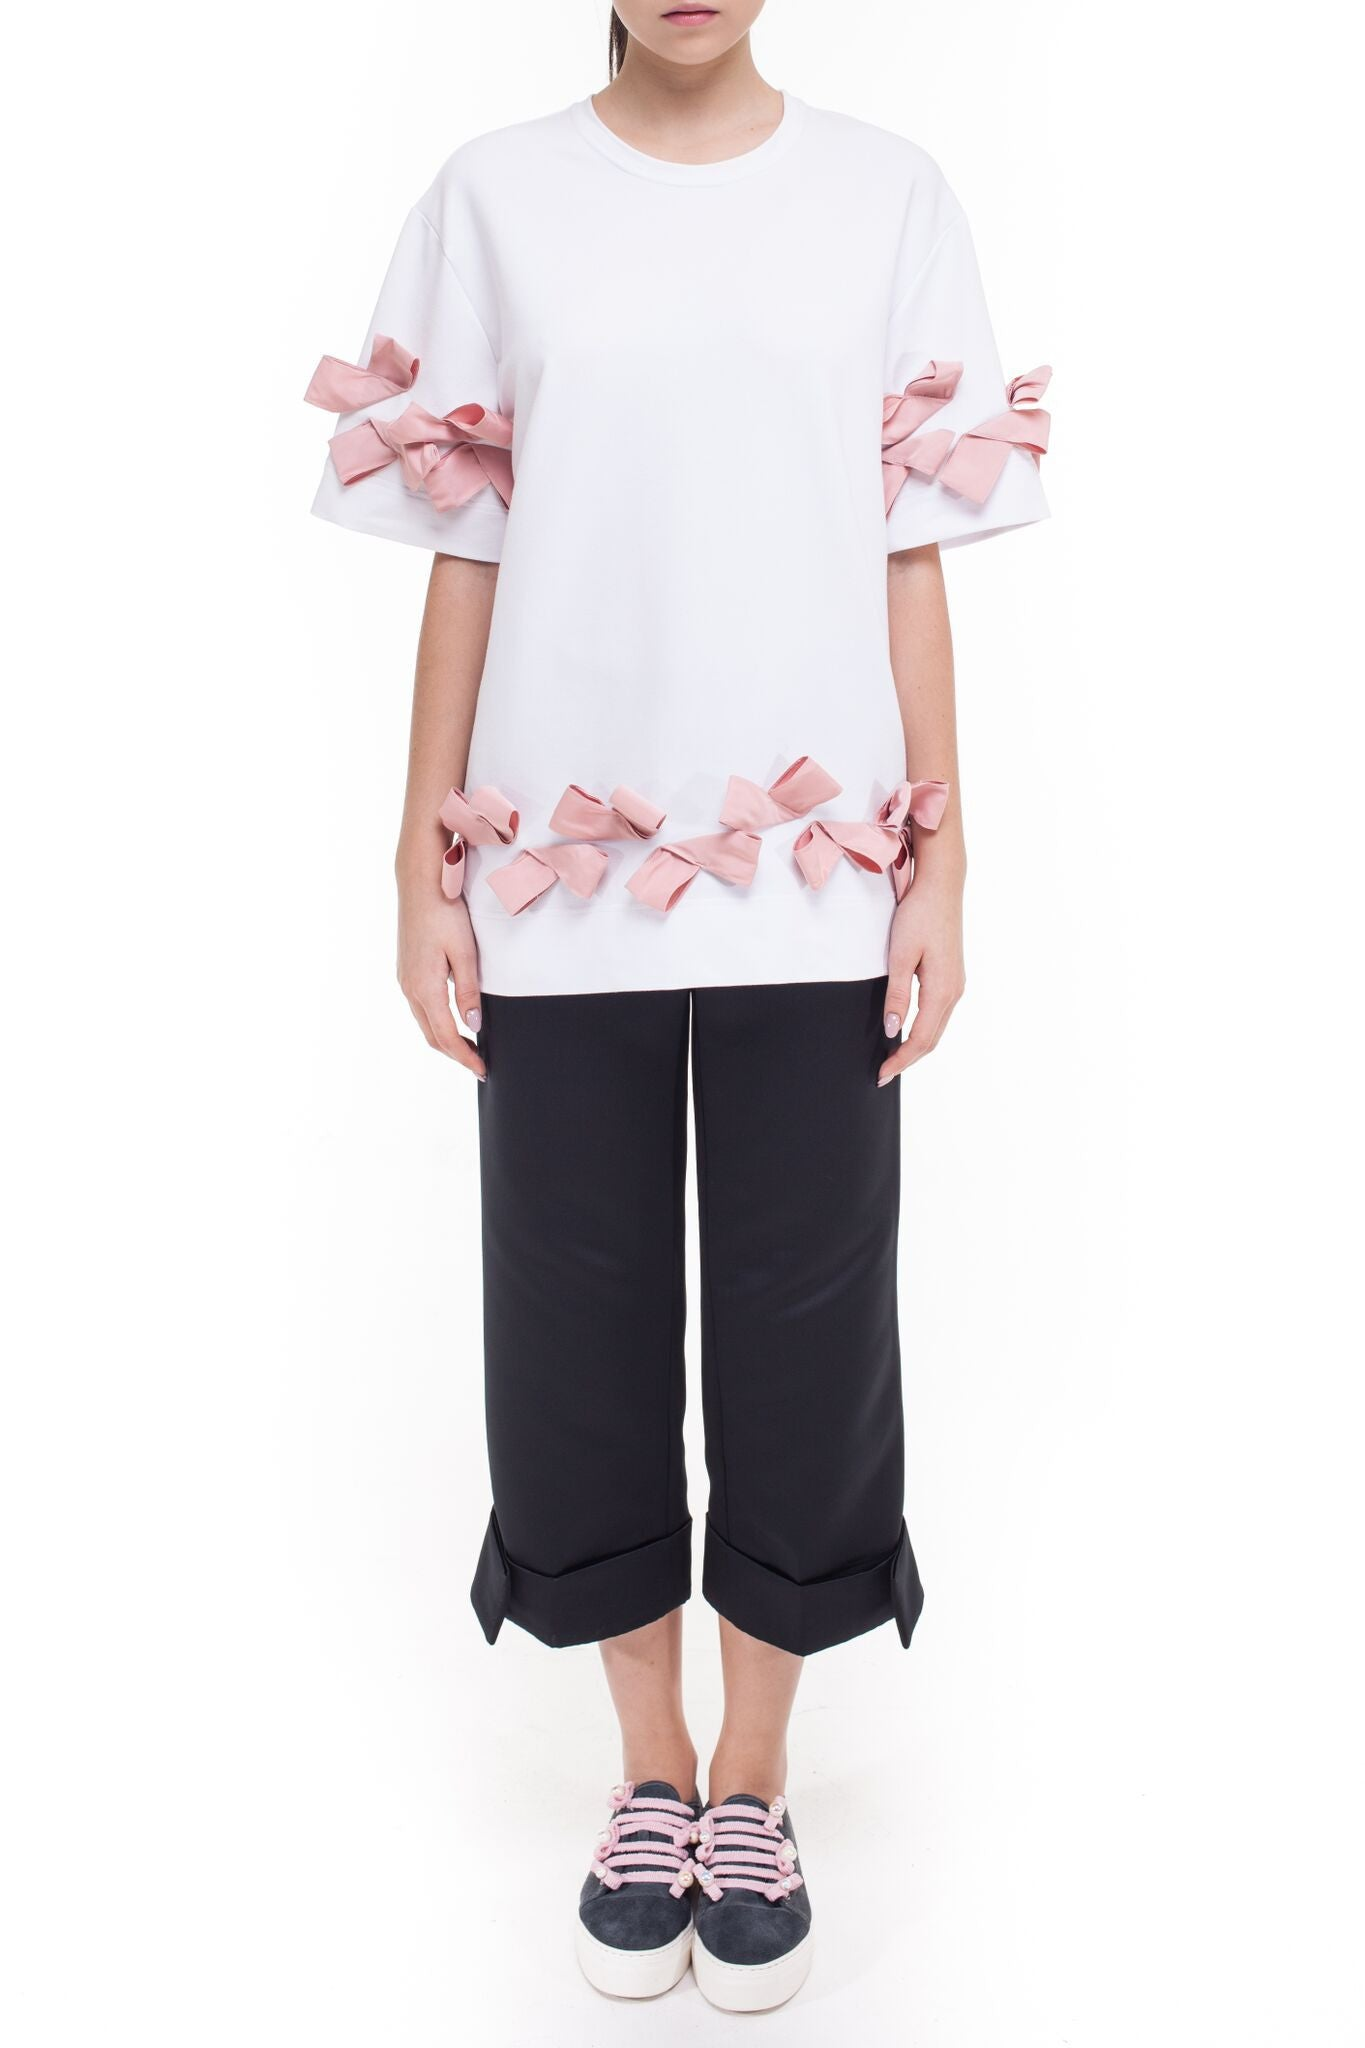 T-shirt with bows on the shoulders and bottom #074/2